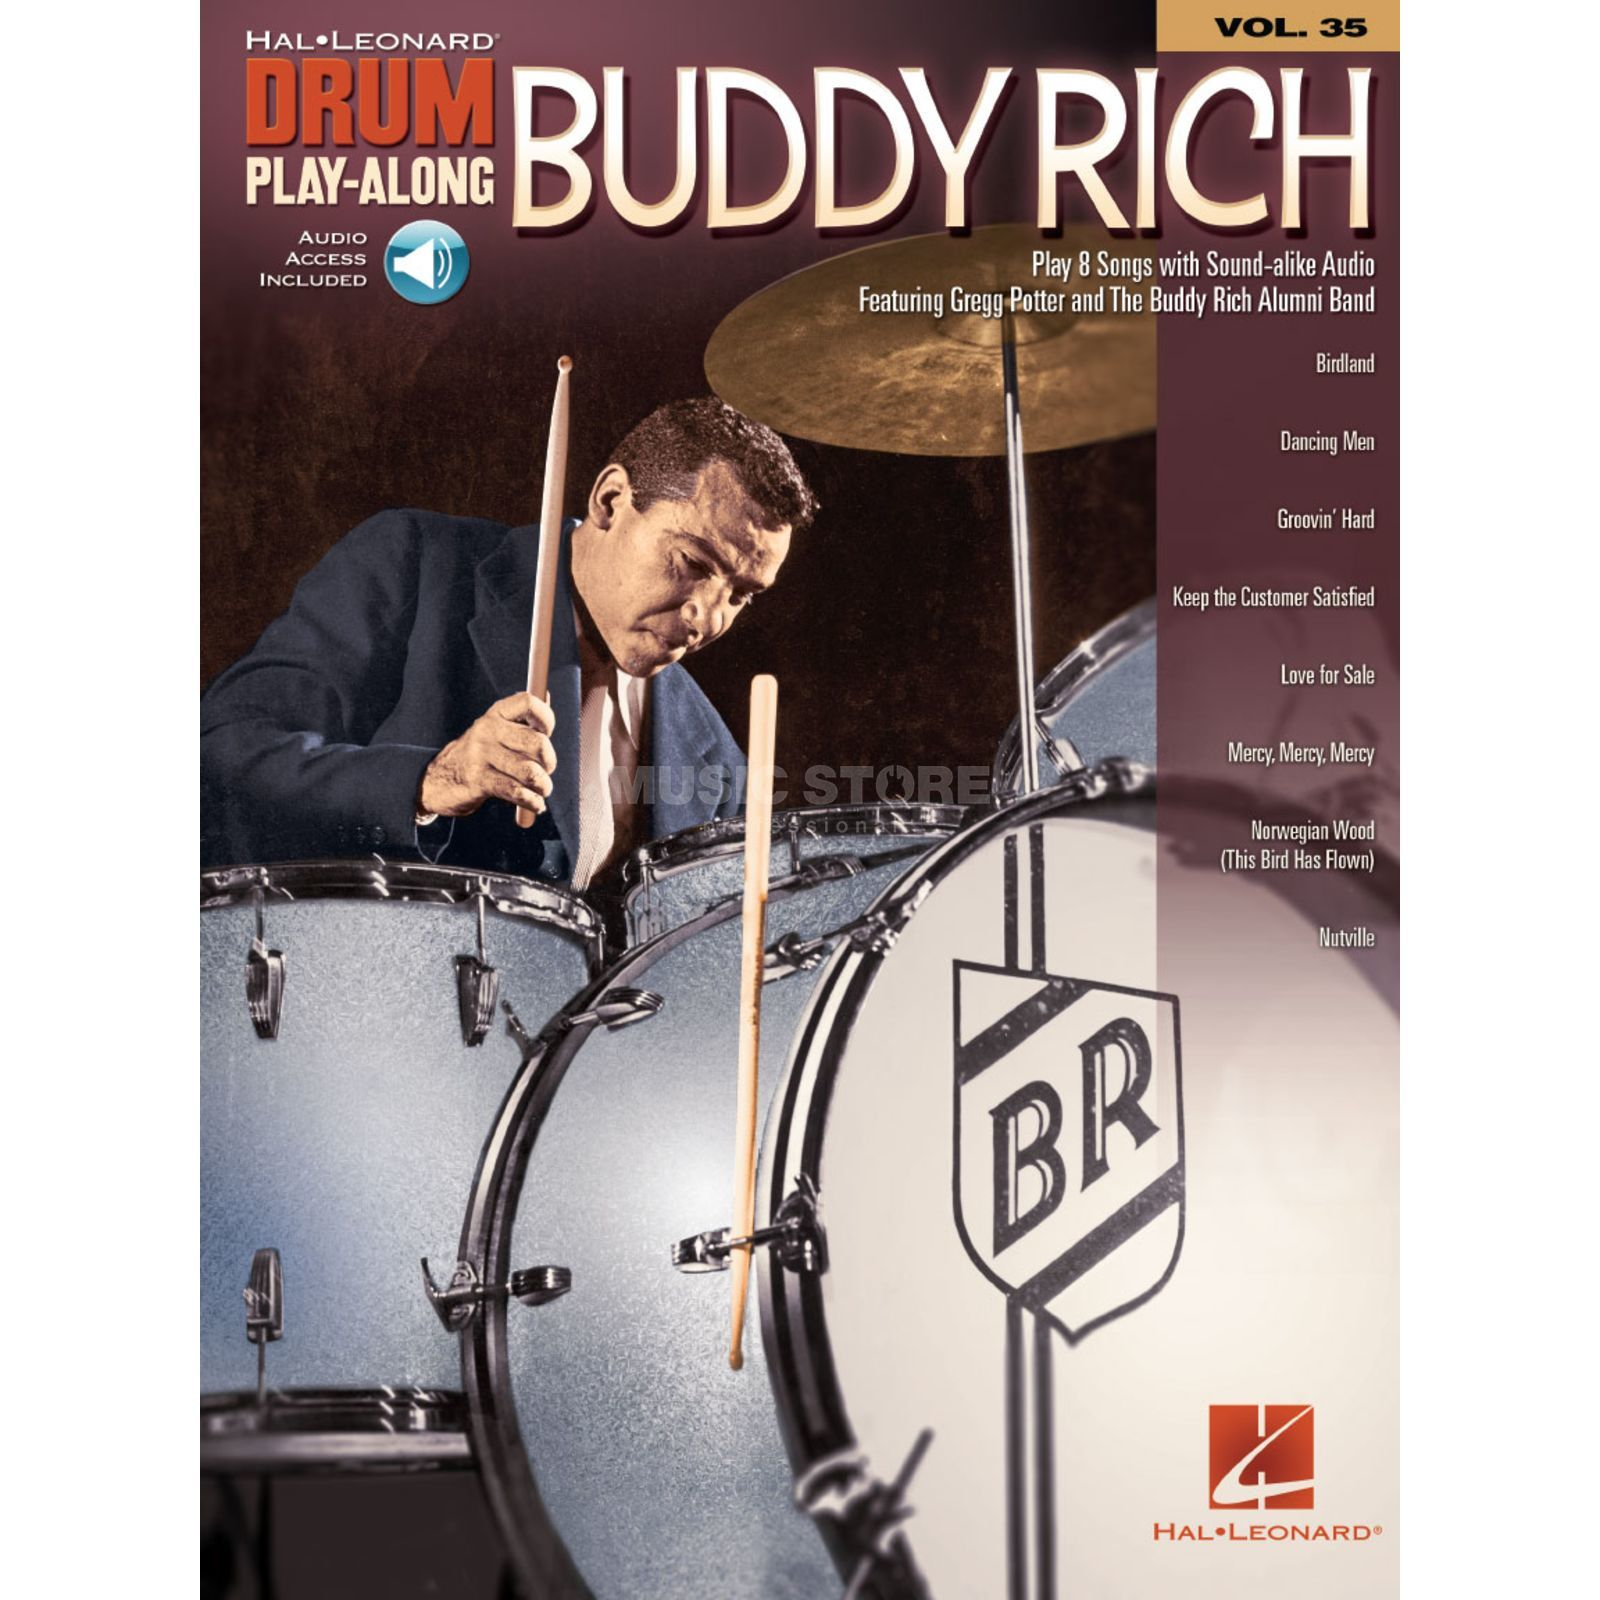 Hal Leonard Drum Play-Along: Buddy Rich Vol. 35, Download Productafbeelding